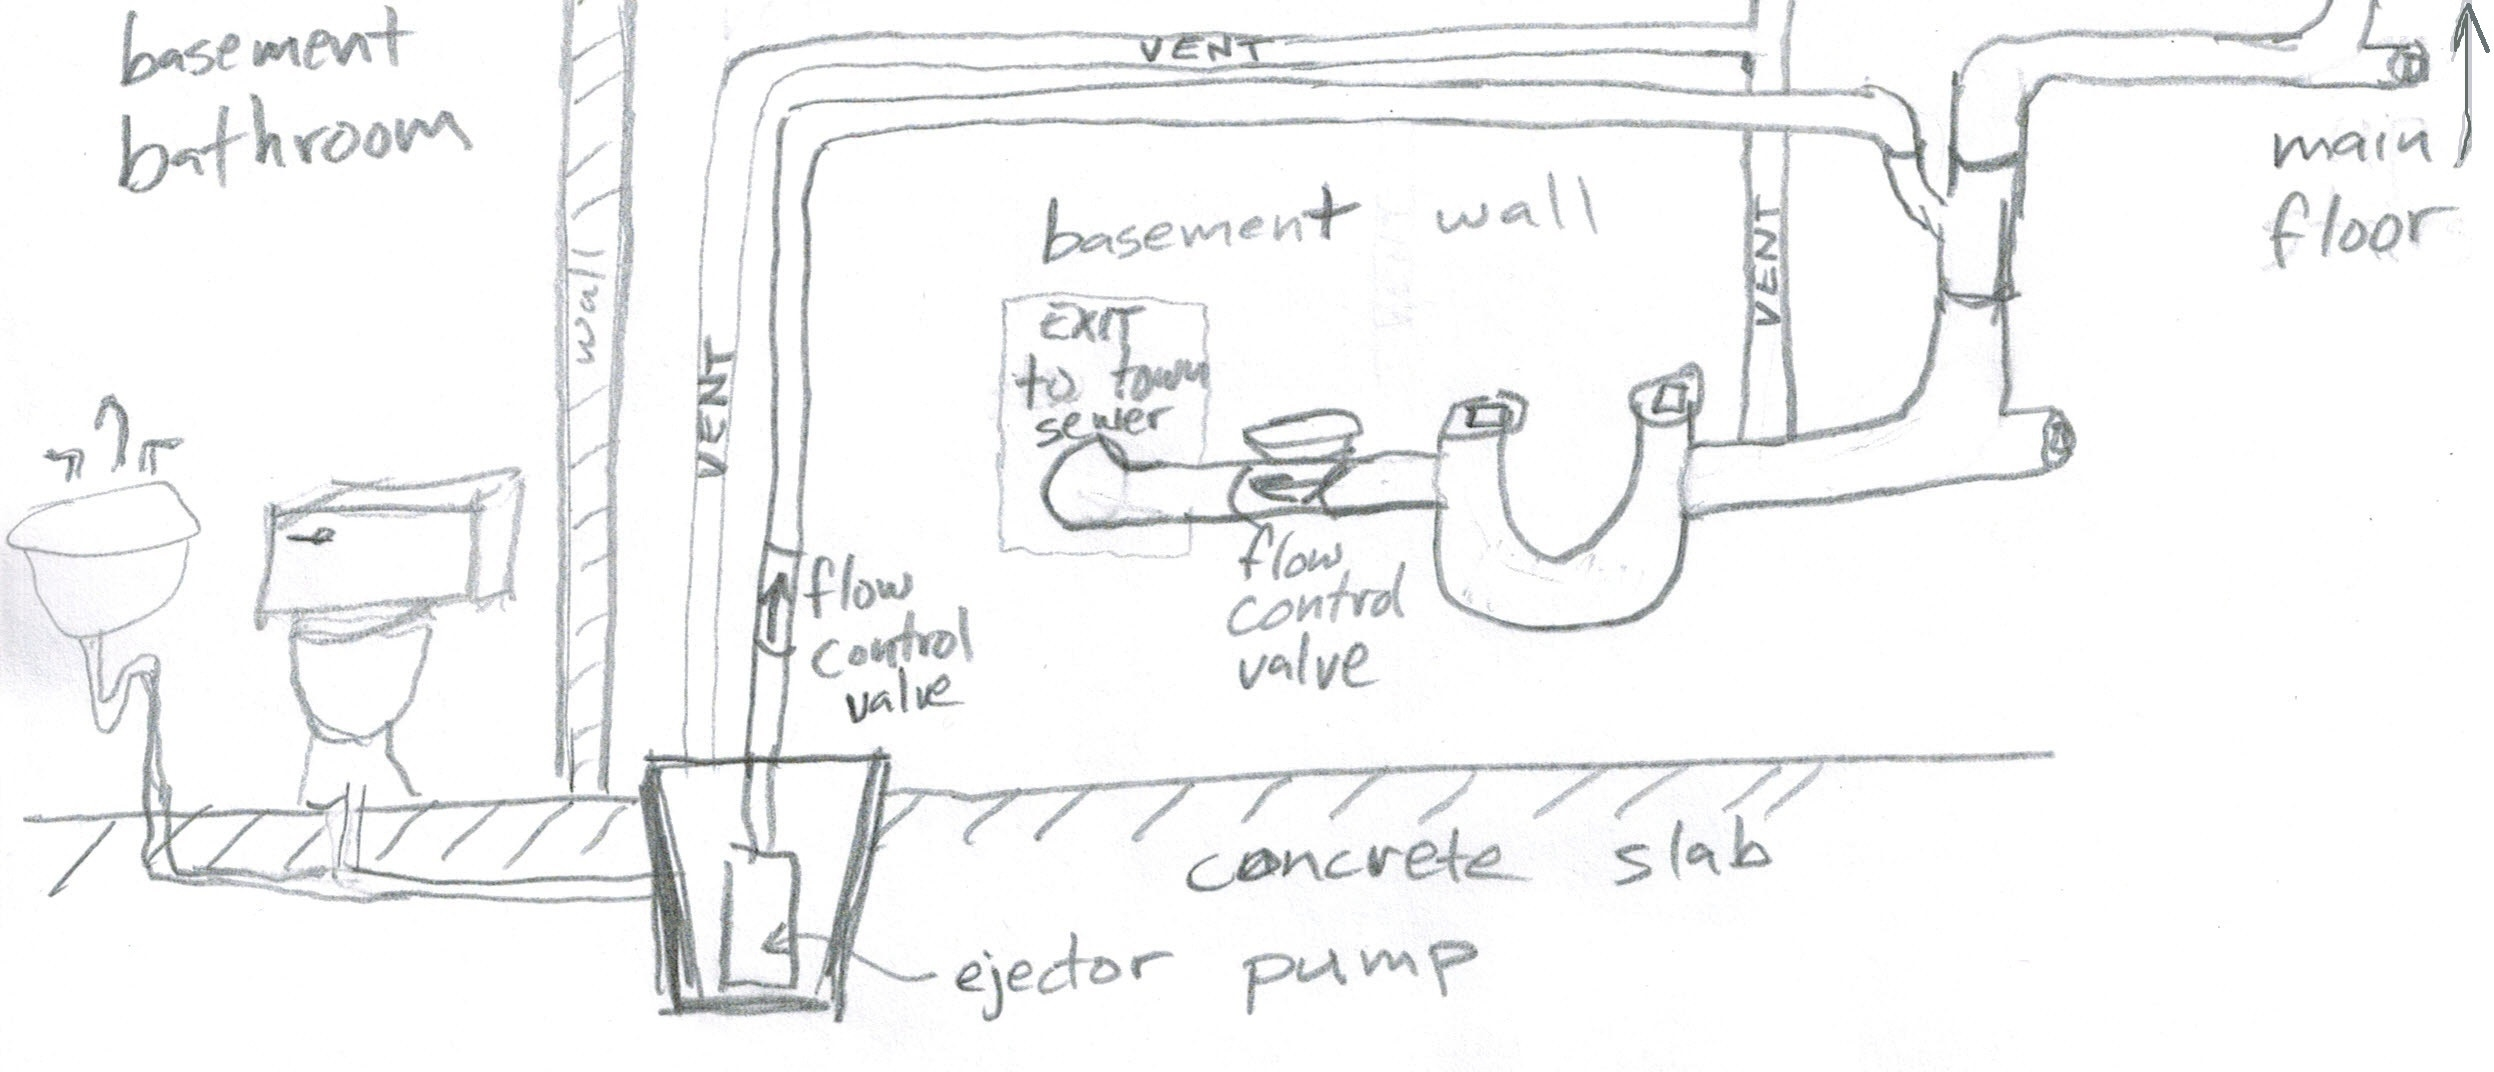 Permalink to Basement Waste Pump